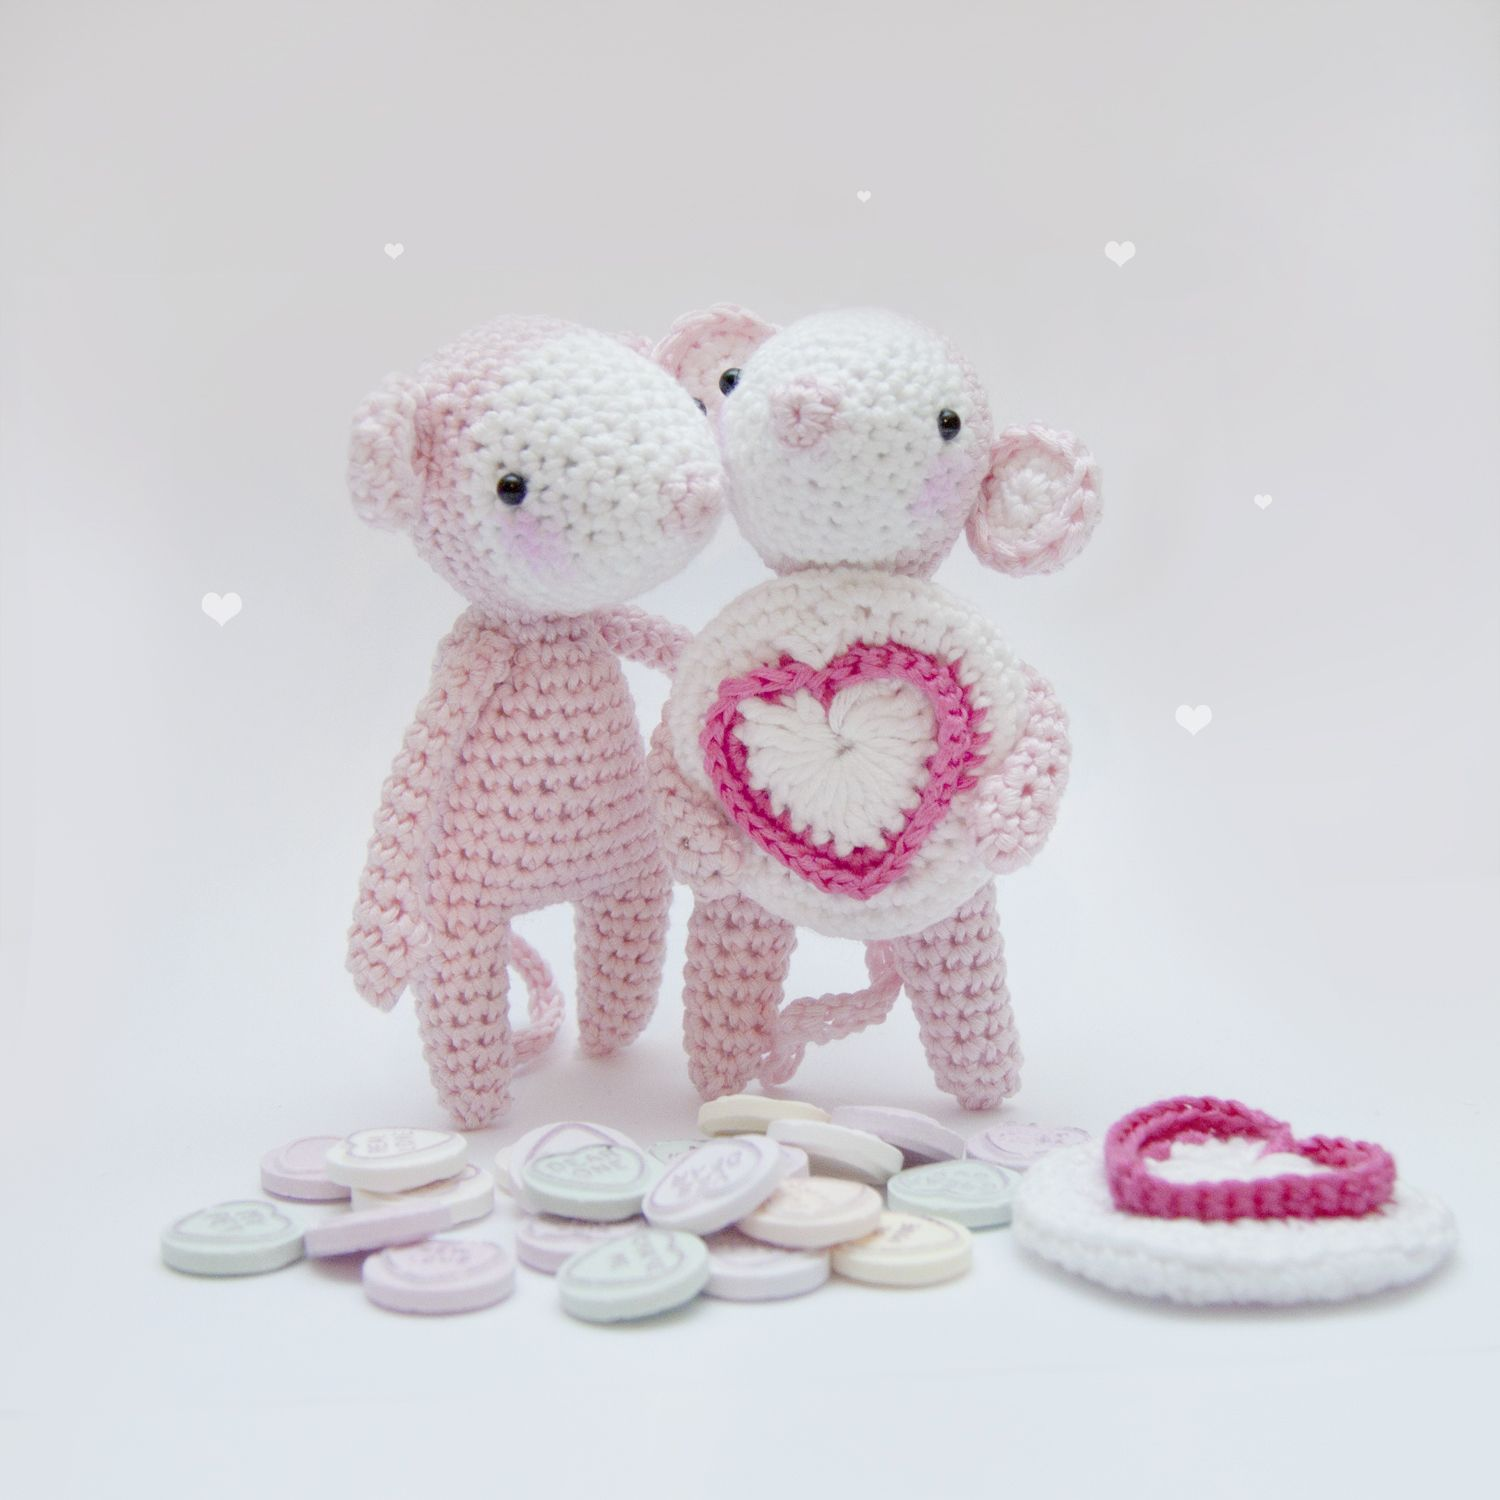 Love Heart Mouse - Free Amigurumi Pattern here: http://www.inart.no ...